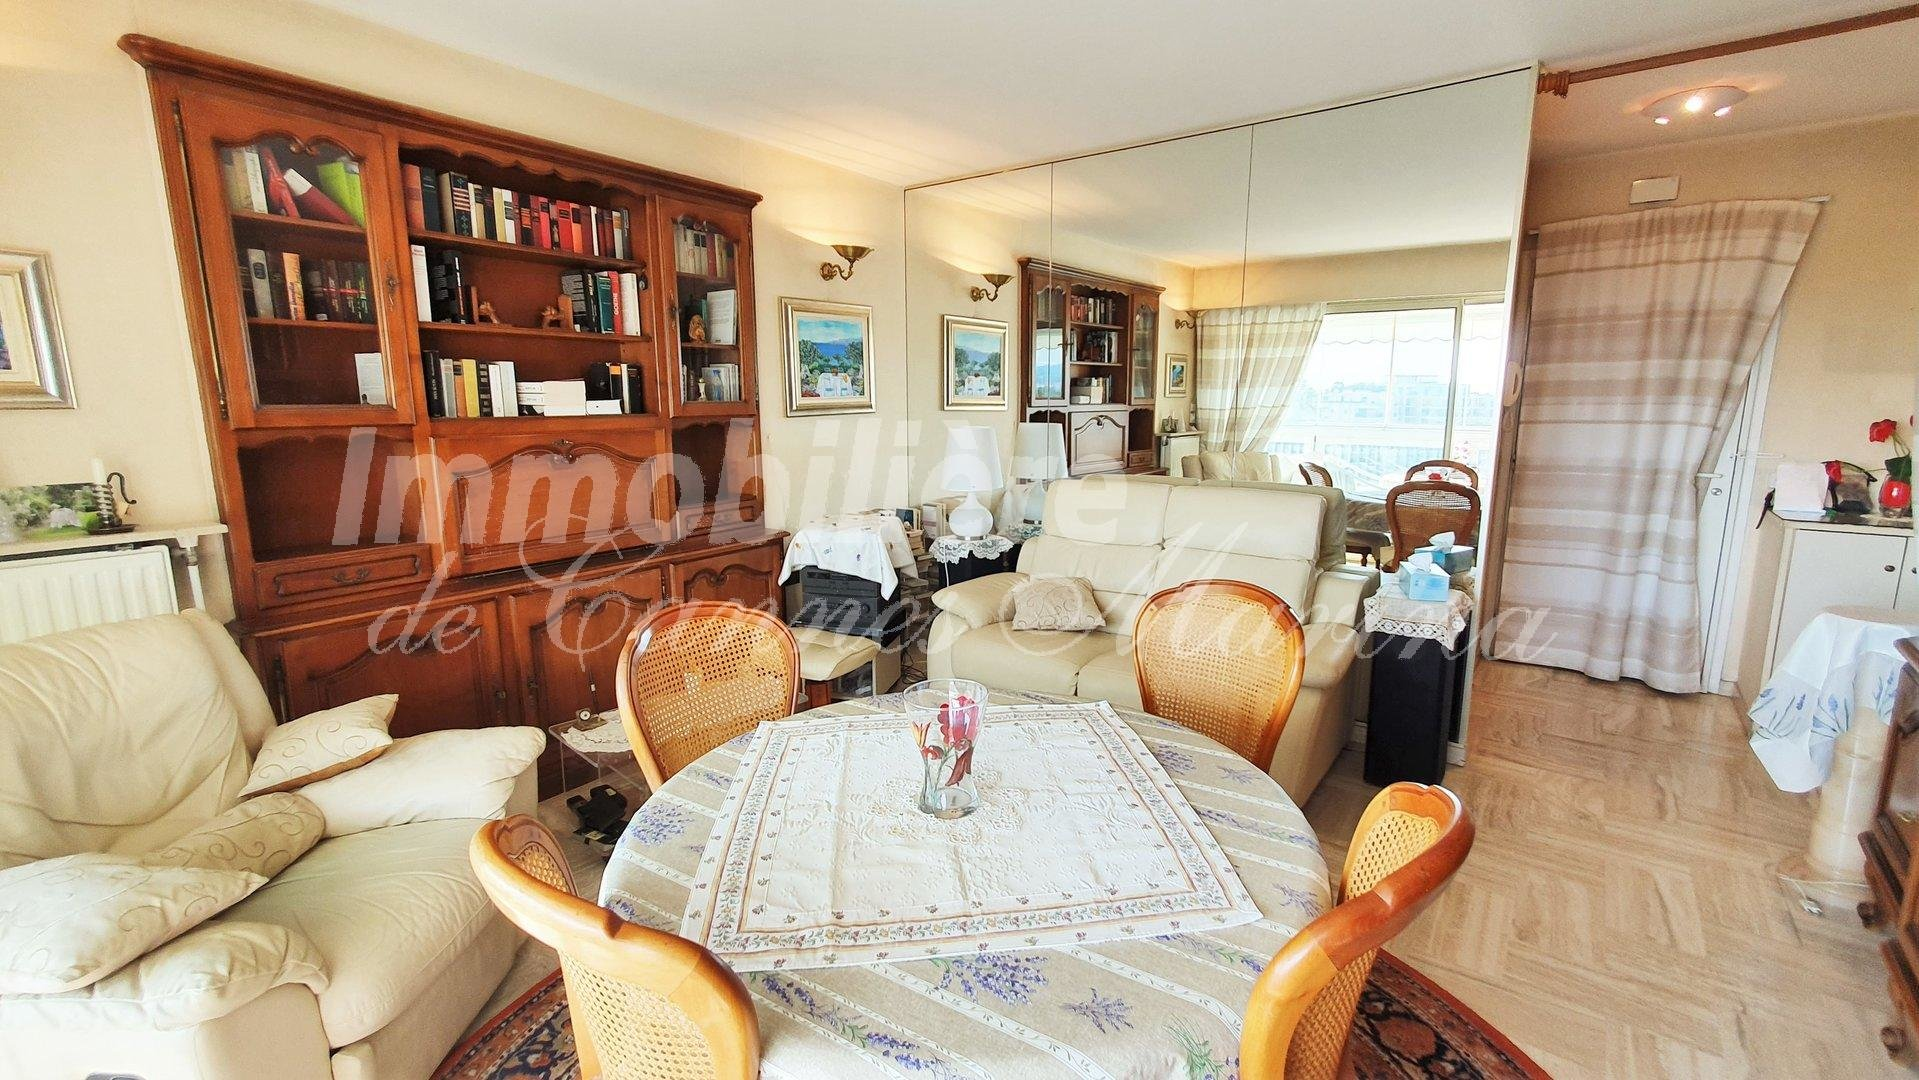 Magnificent one bedroom apartment with a large sunny terrace and view of the port